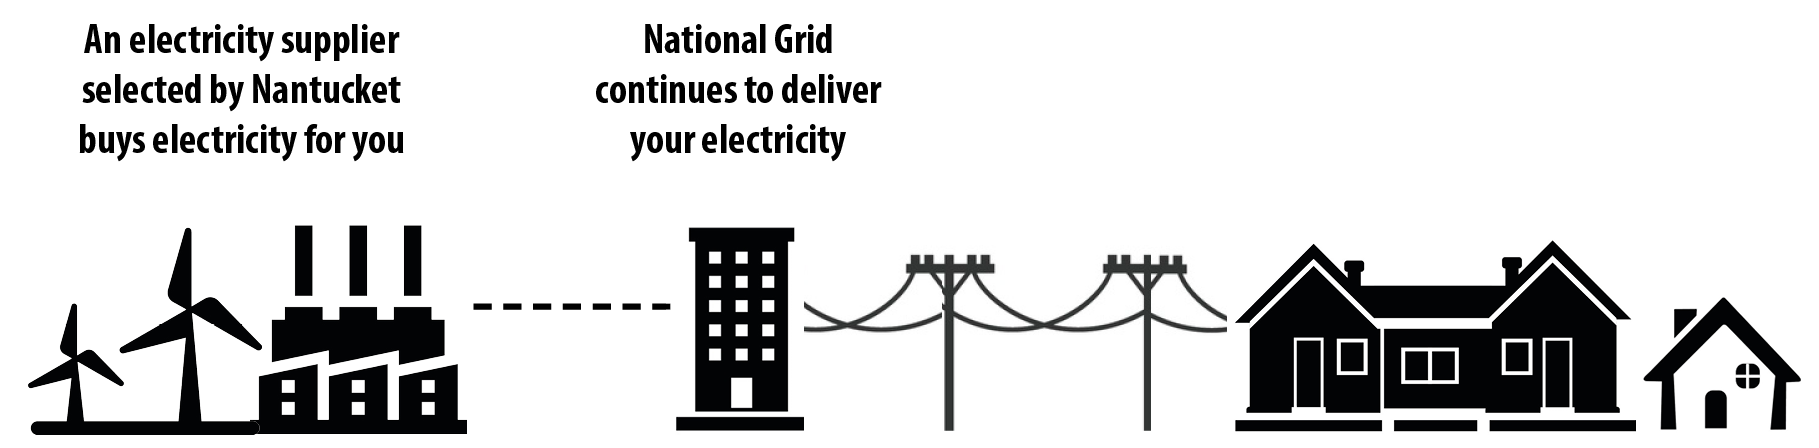 Diagram showing an electricity supplier, National Grid, and the Town of Nantucket